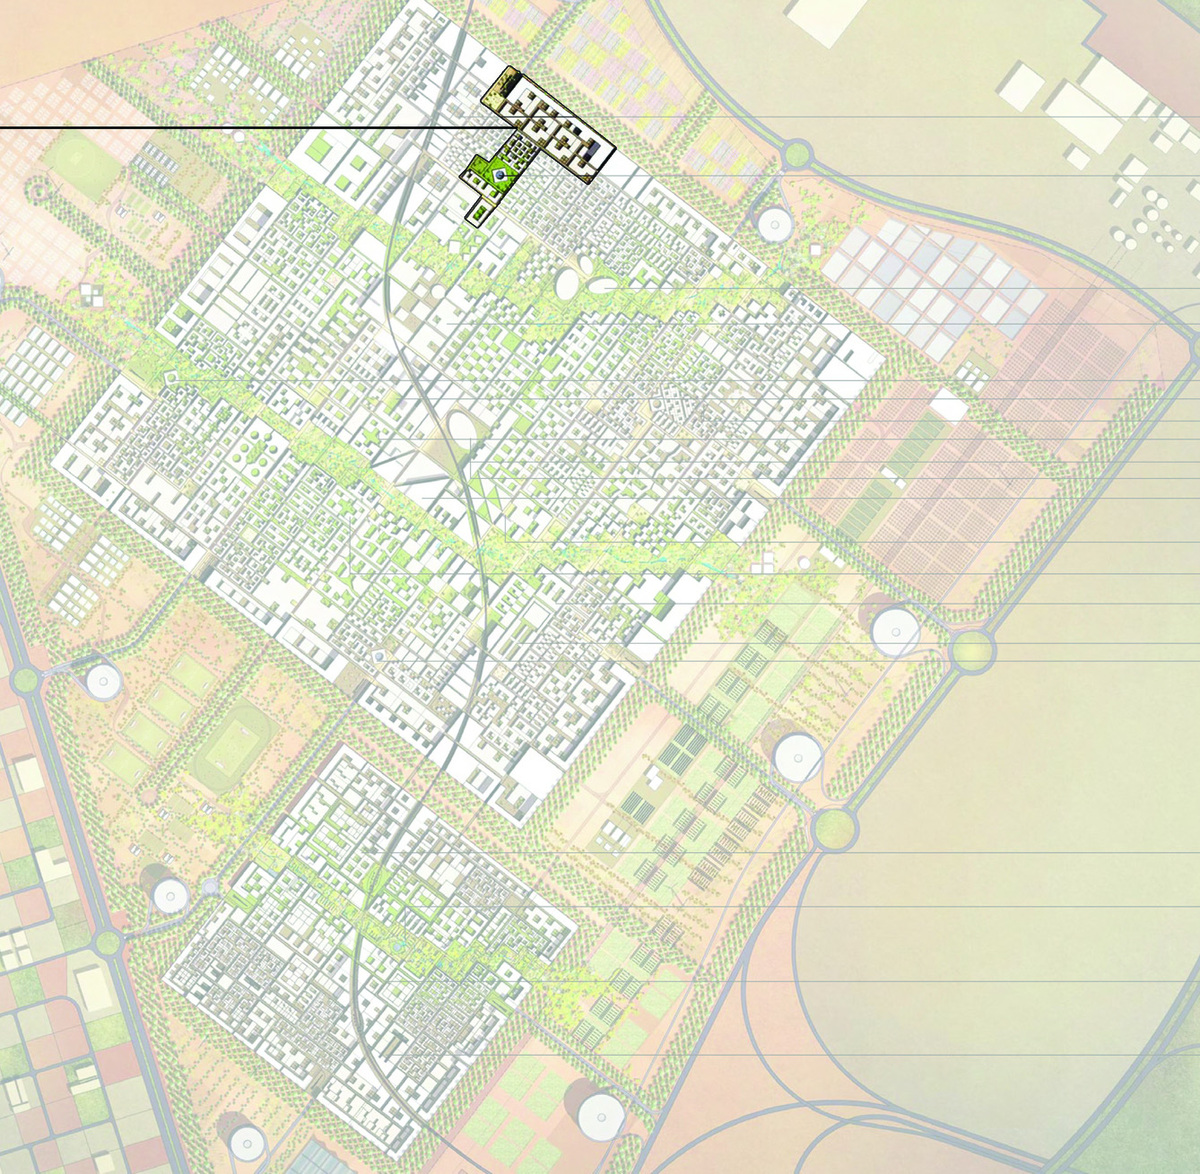 location of project in the City plan